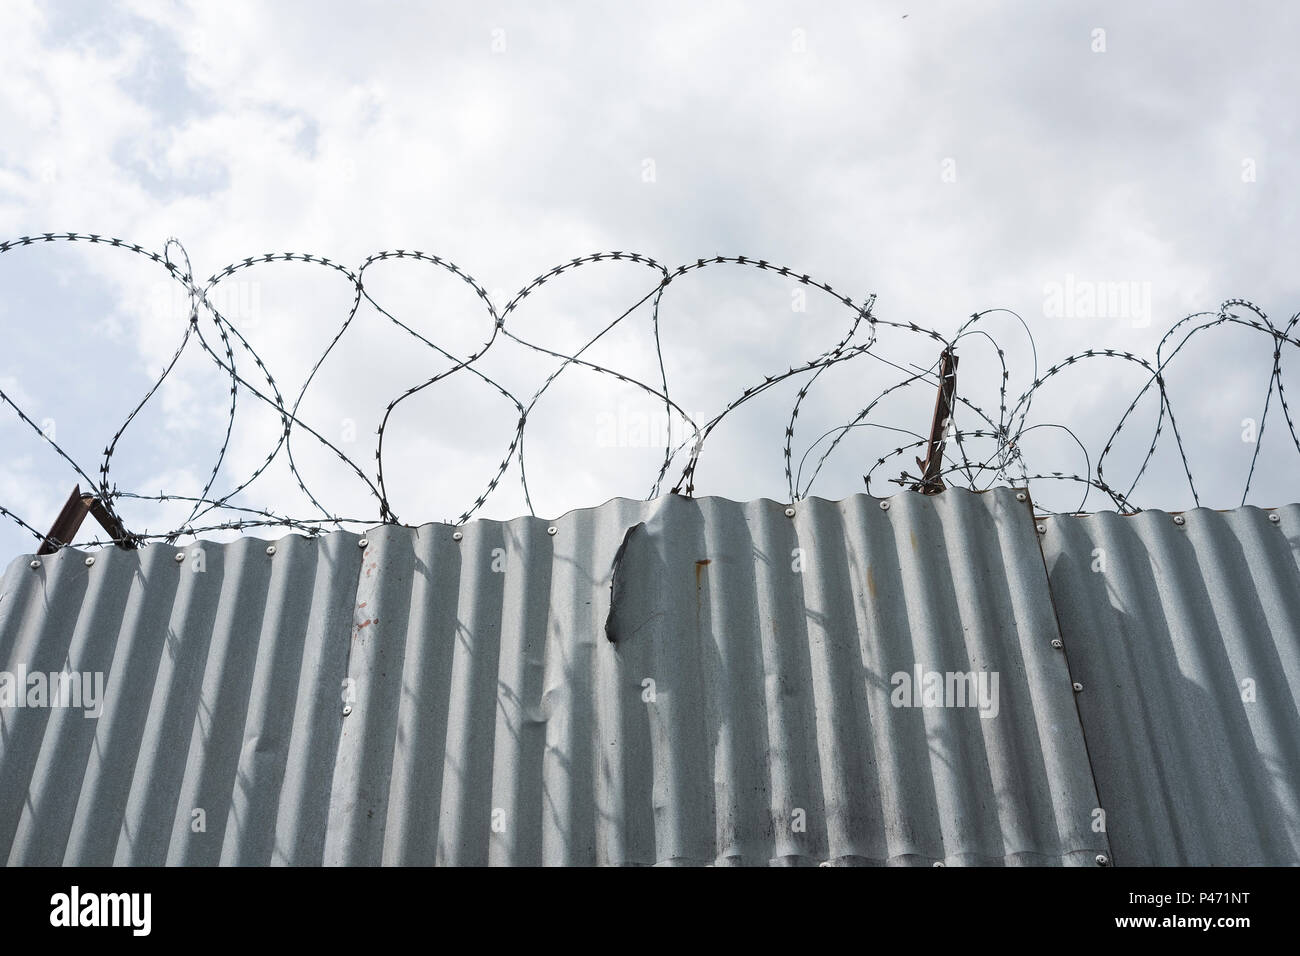 Tall Steel Fence Stock Photos & Tall Steel Fence Stock Images - Alamy